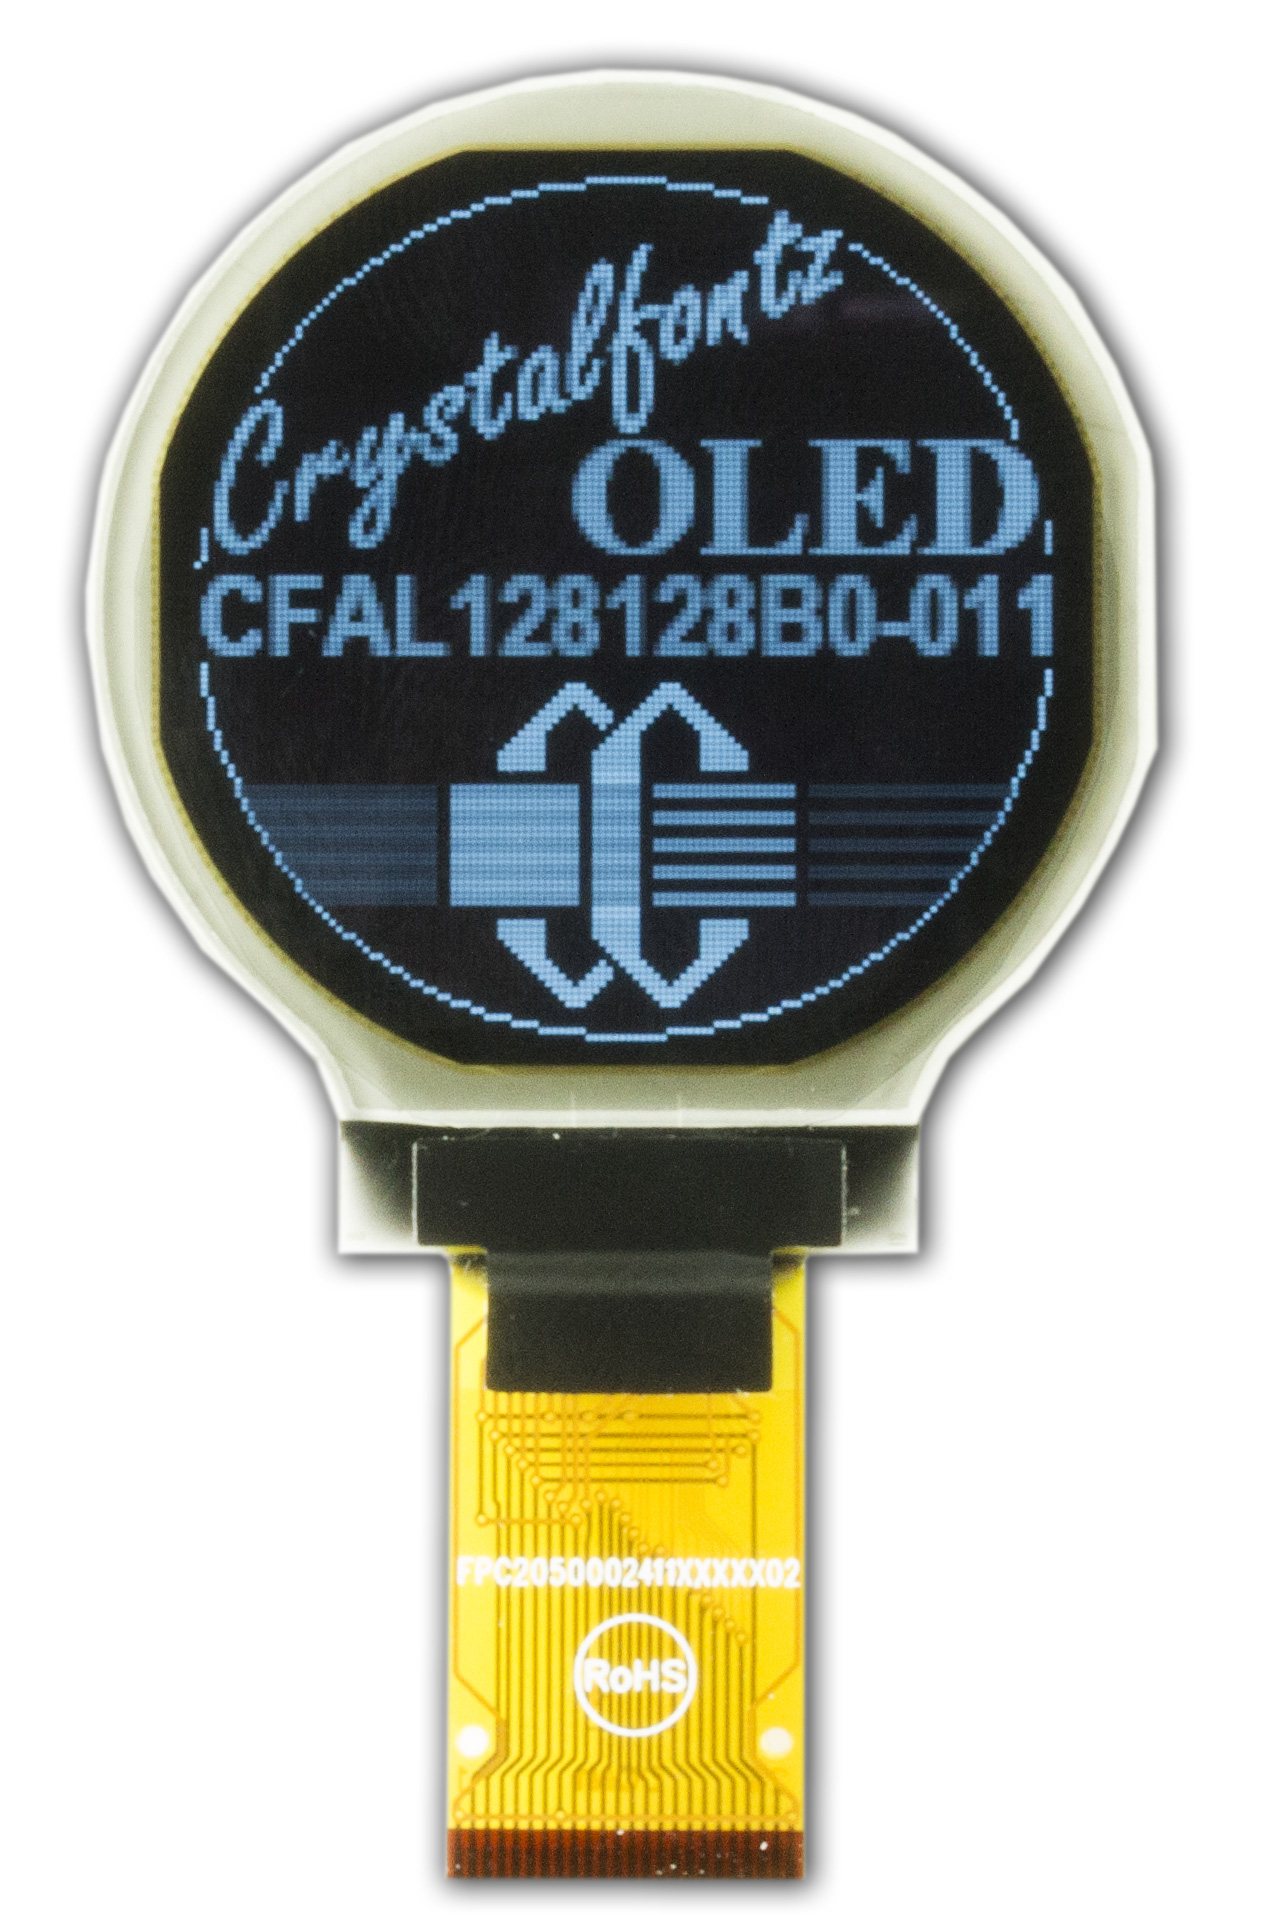 128x128 Round OLED display